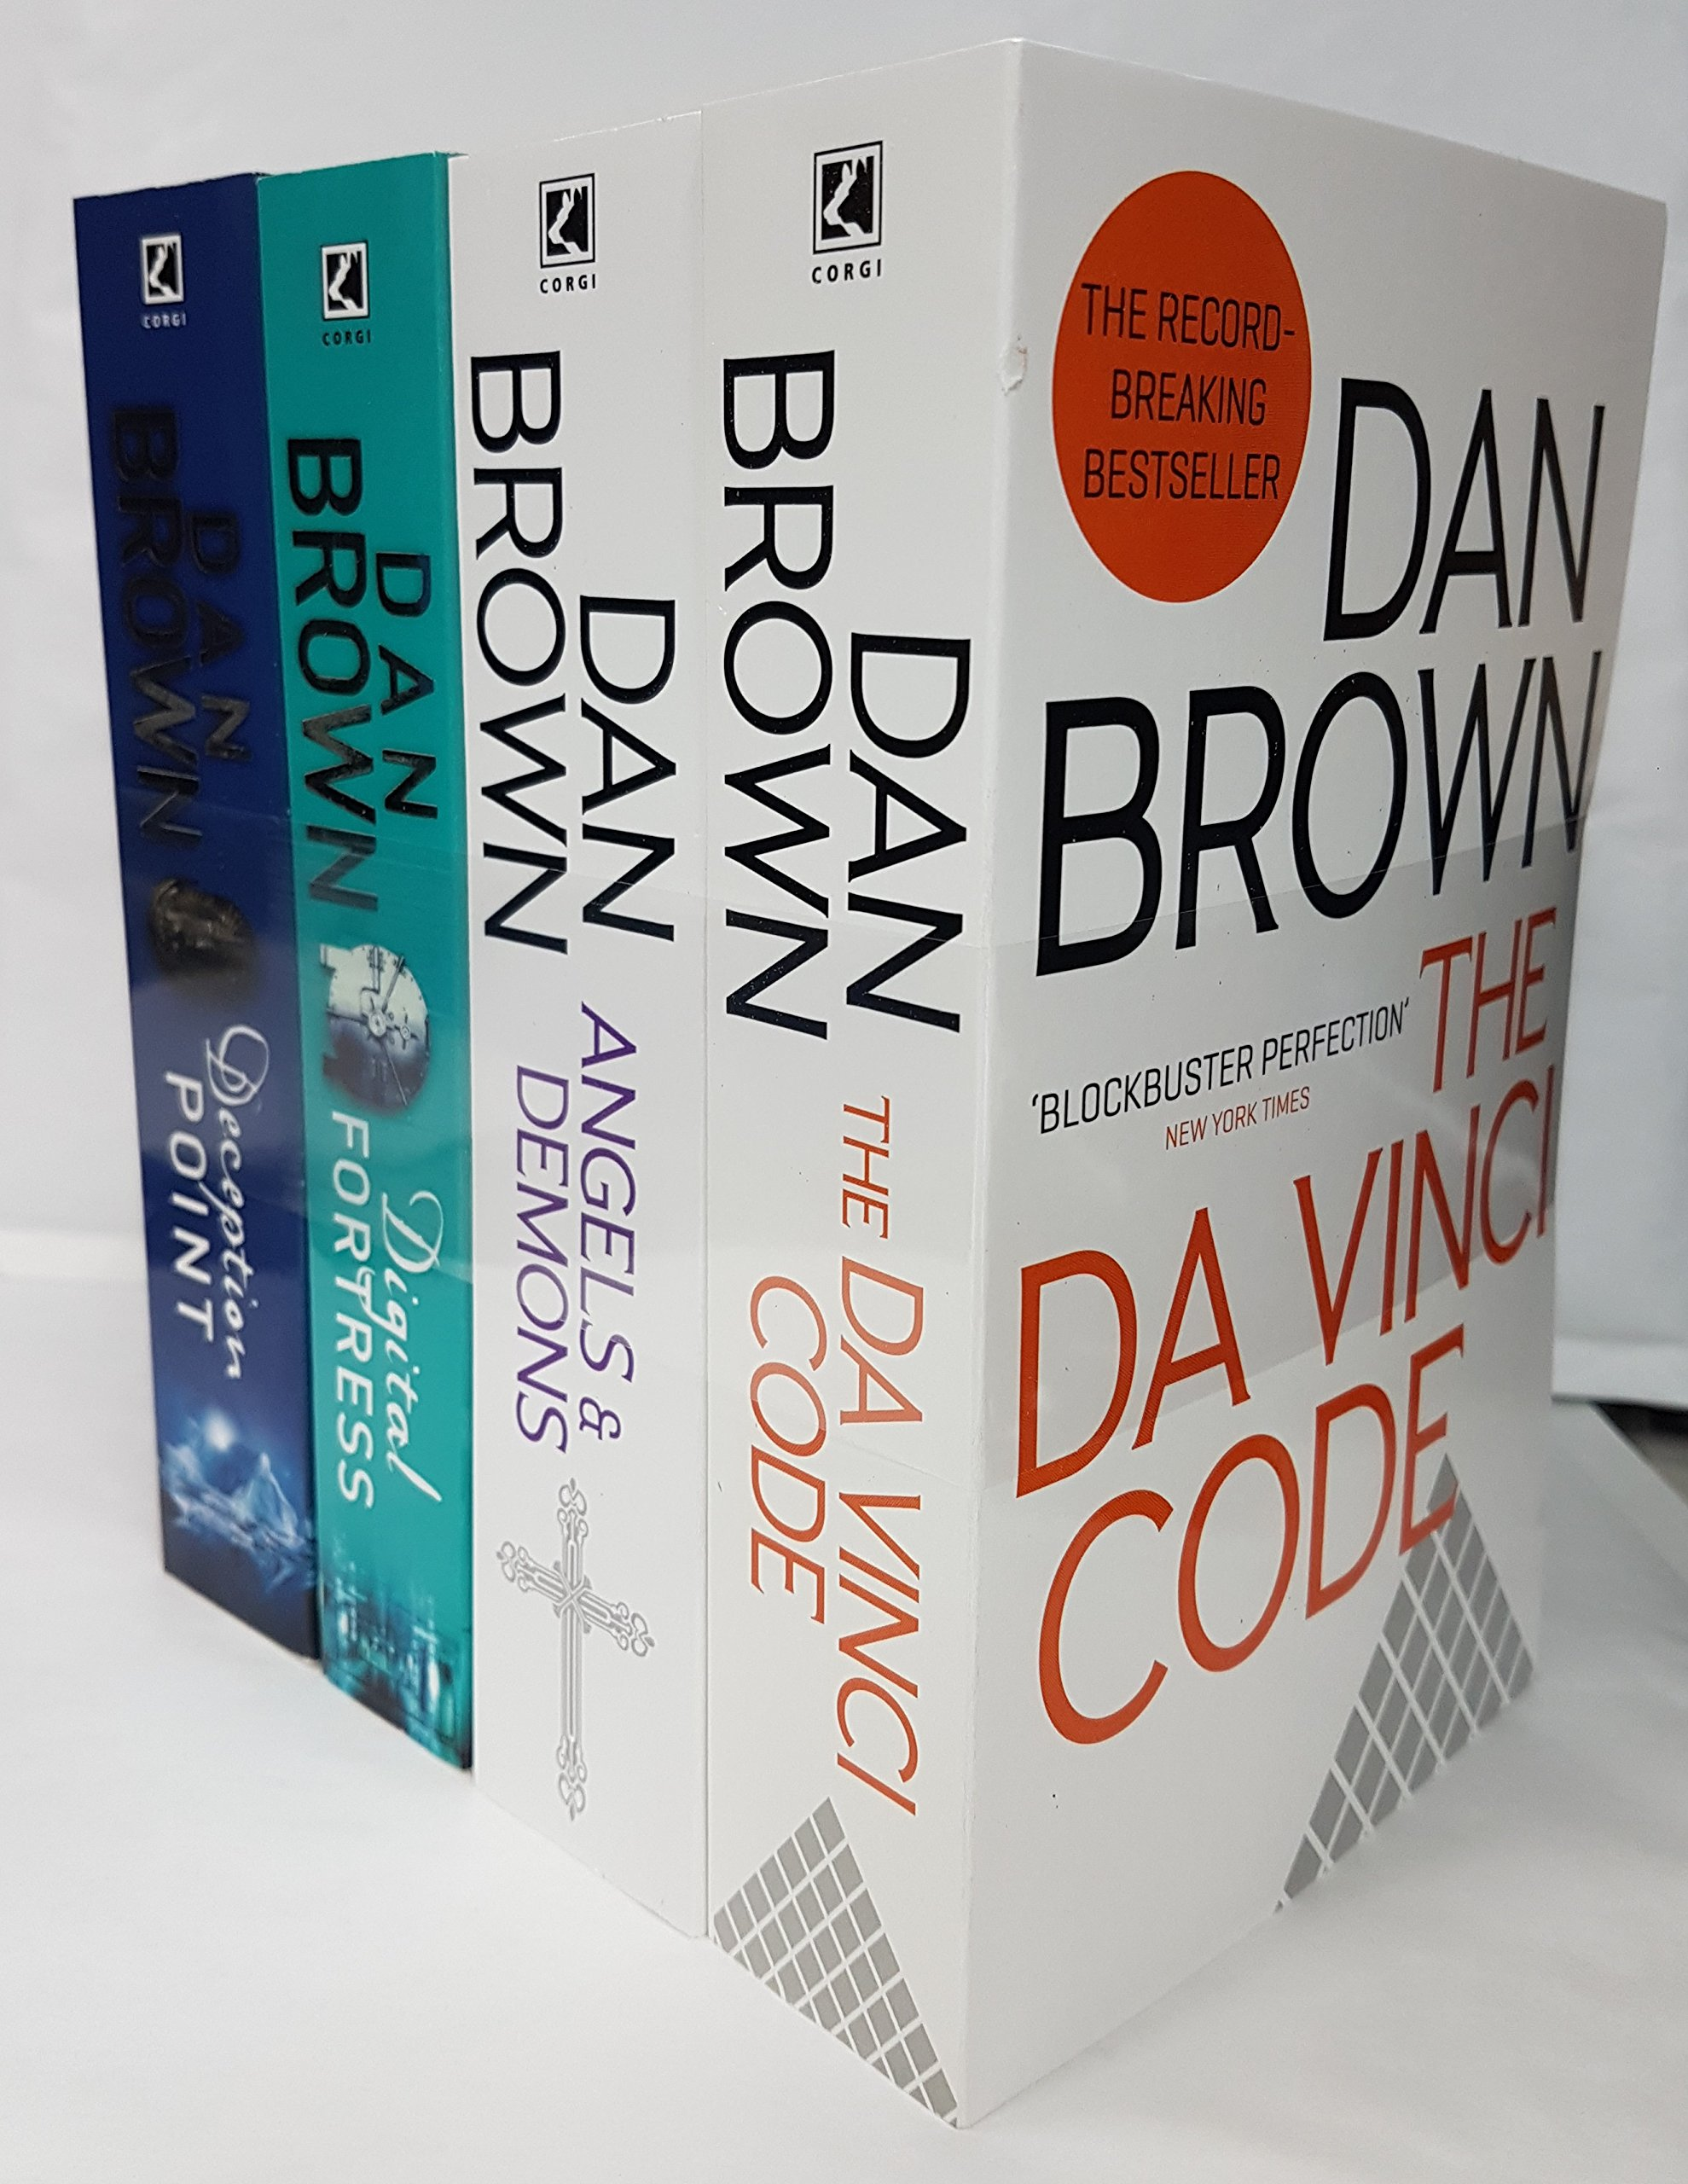 Dan brown 5 books collection set rrp 3895 the lost symbol dan brown collection 4 books the da vinci code angels and demons buycottarizona